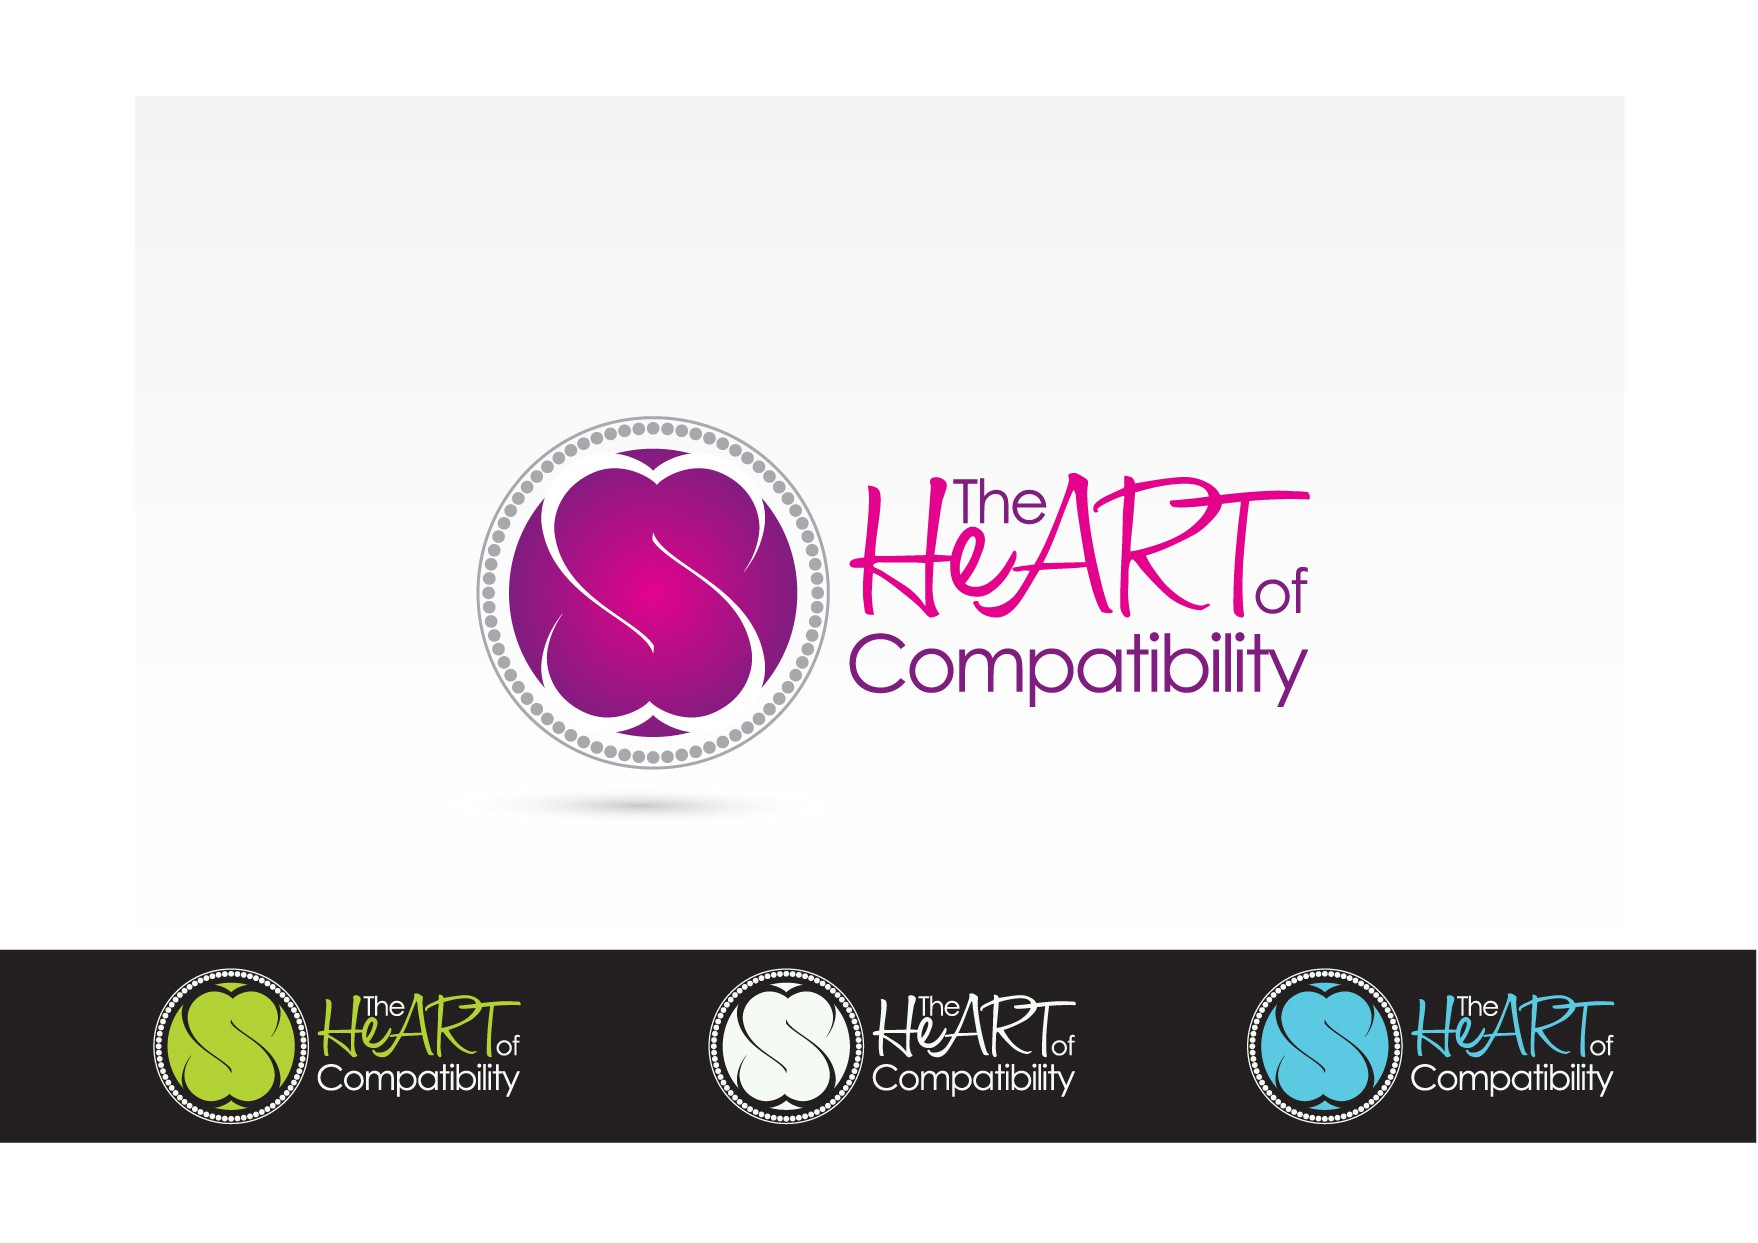 Create the first logo for The Heart of Compatibility